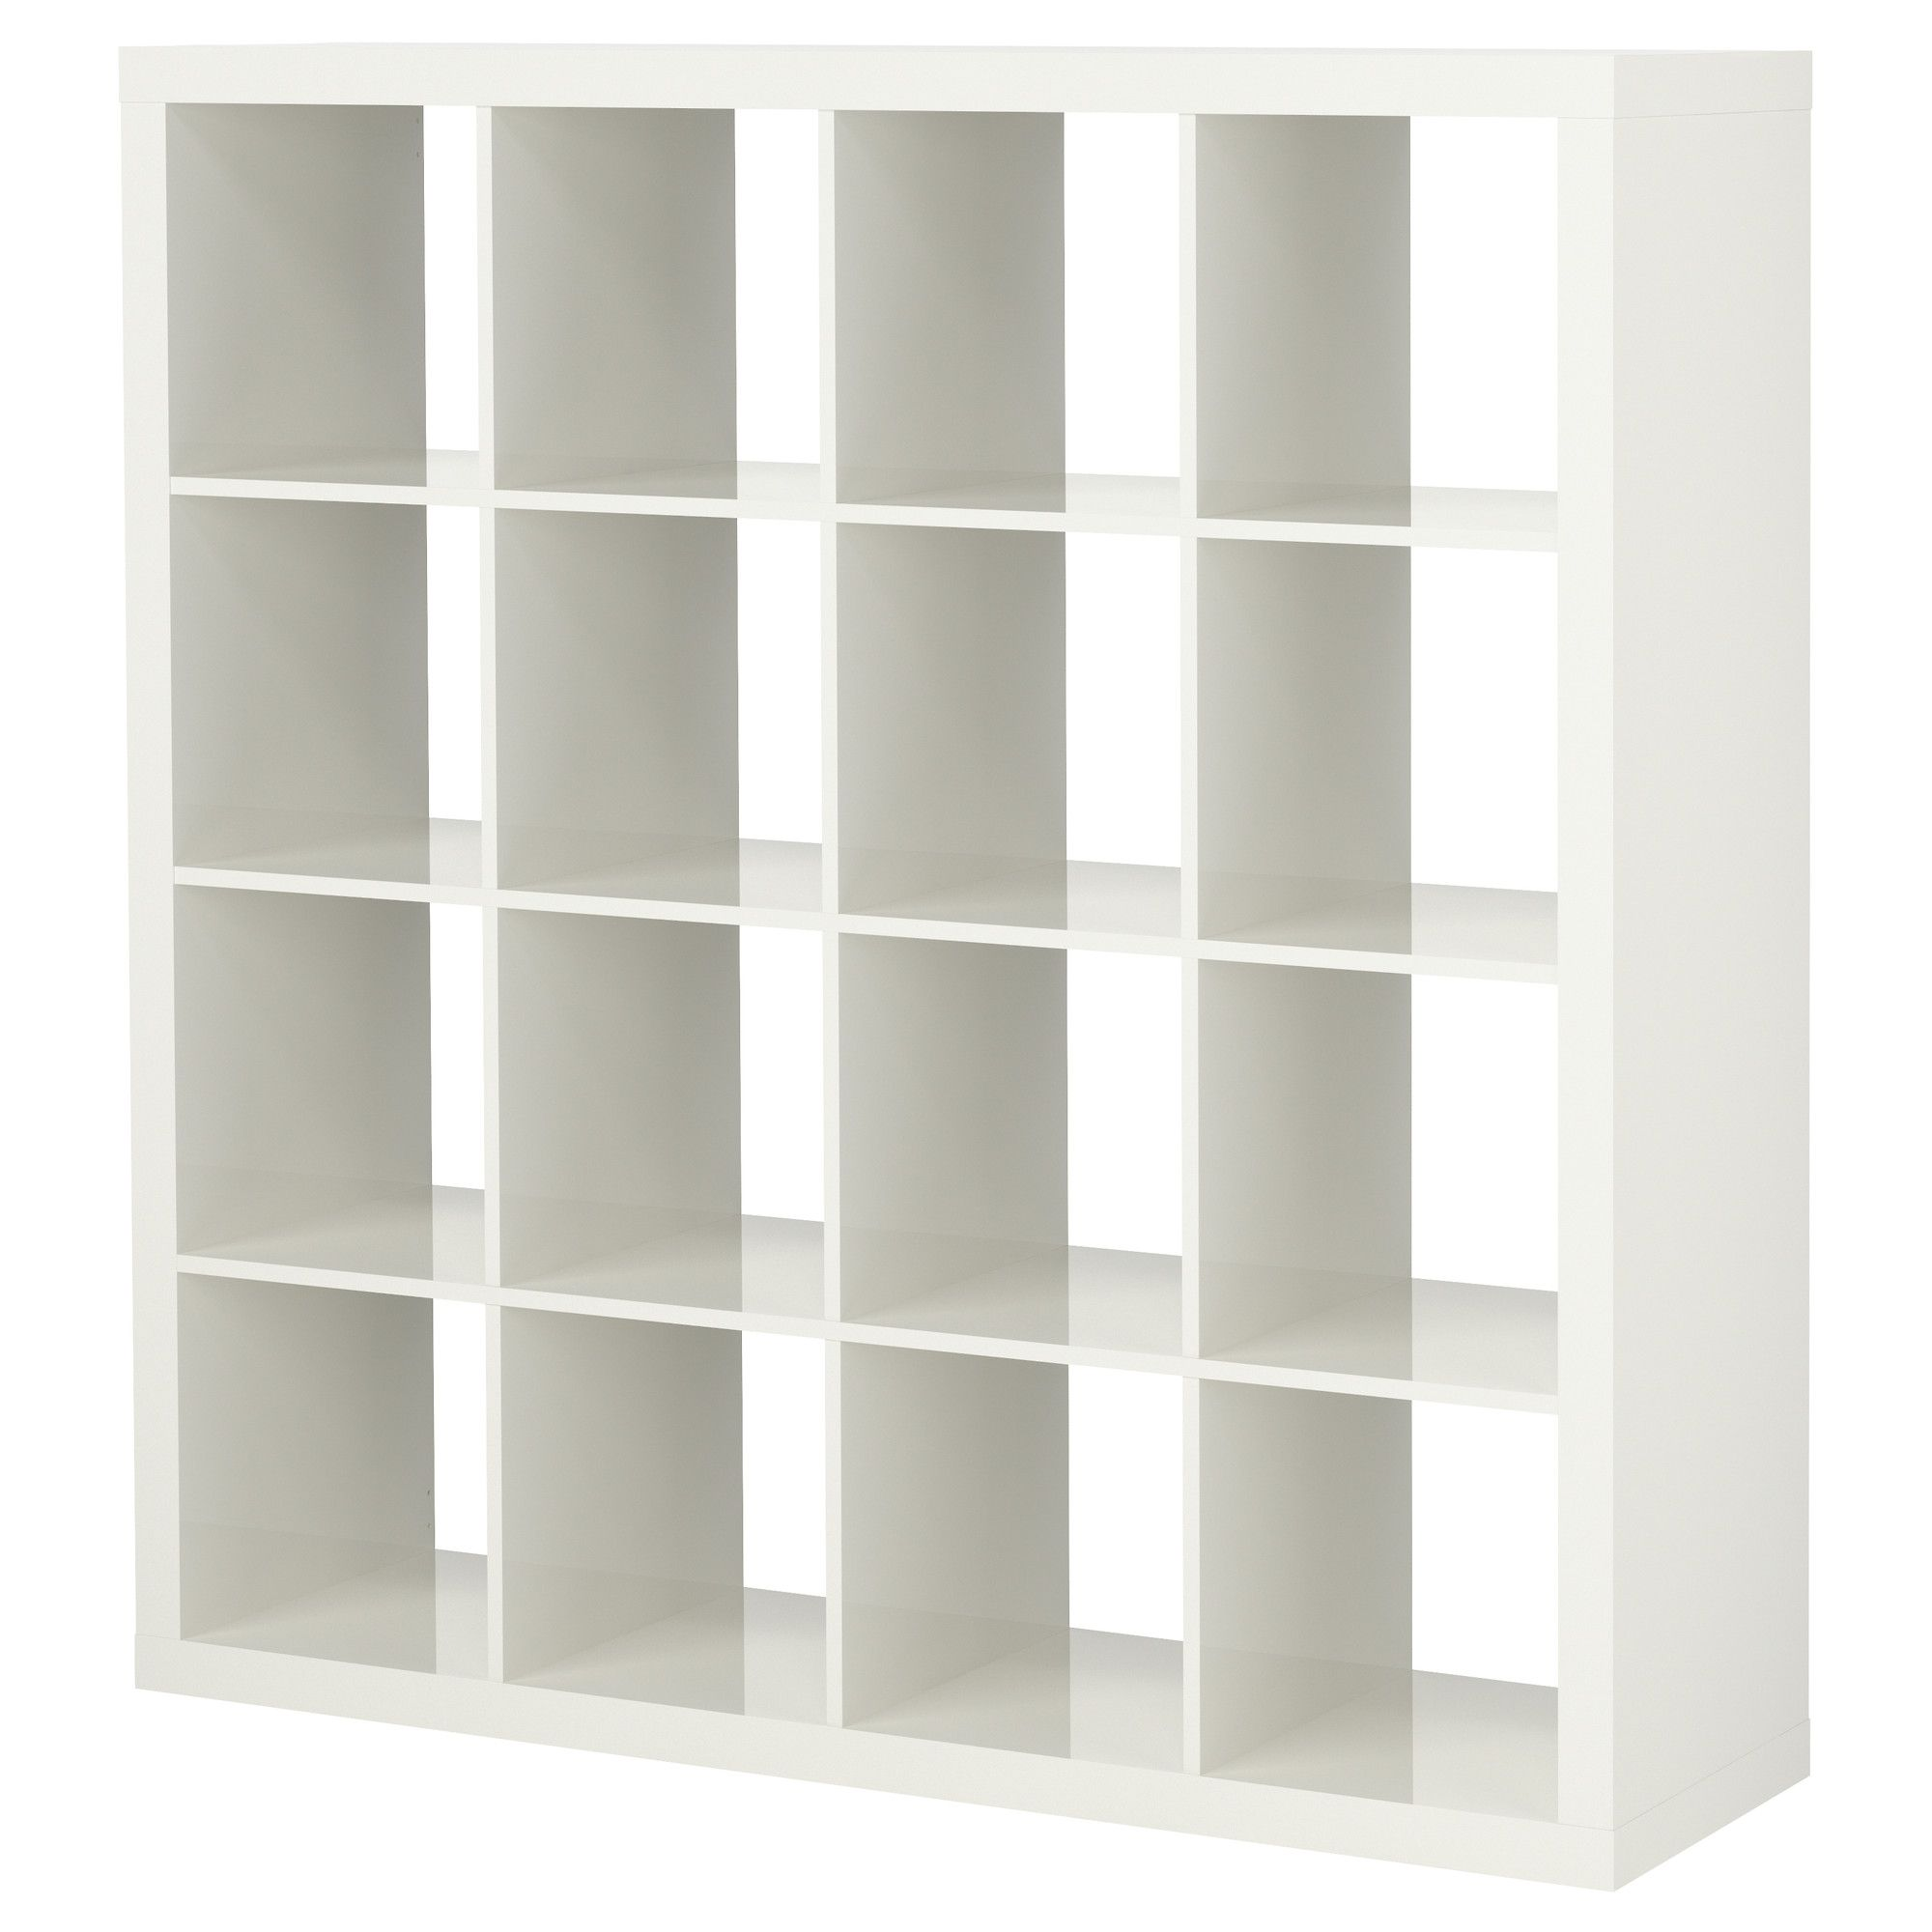 EXPEDIT Shelving unit - high gloss white - IKEA: craft room